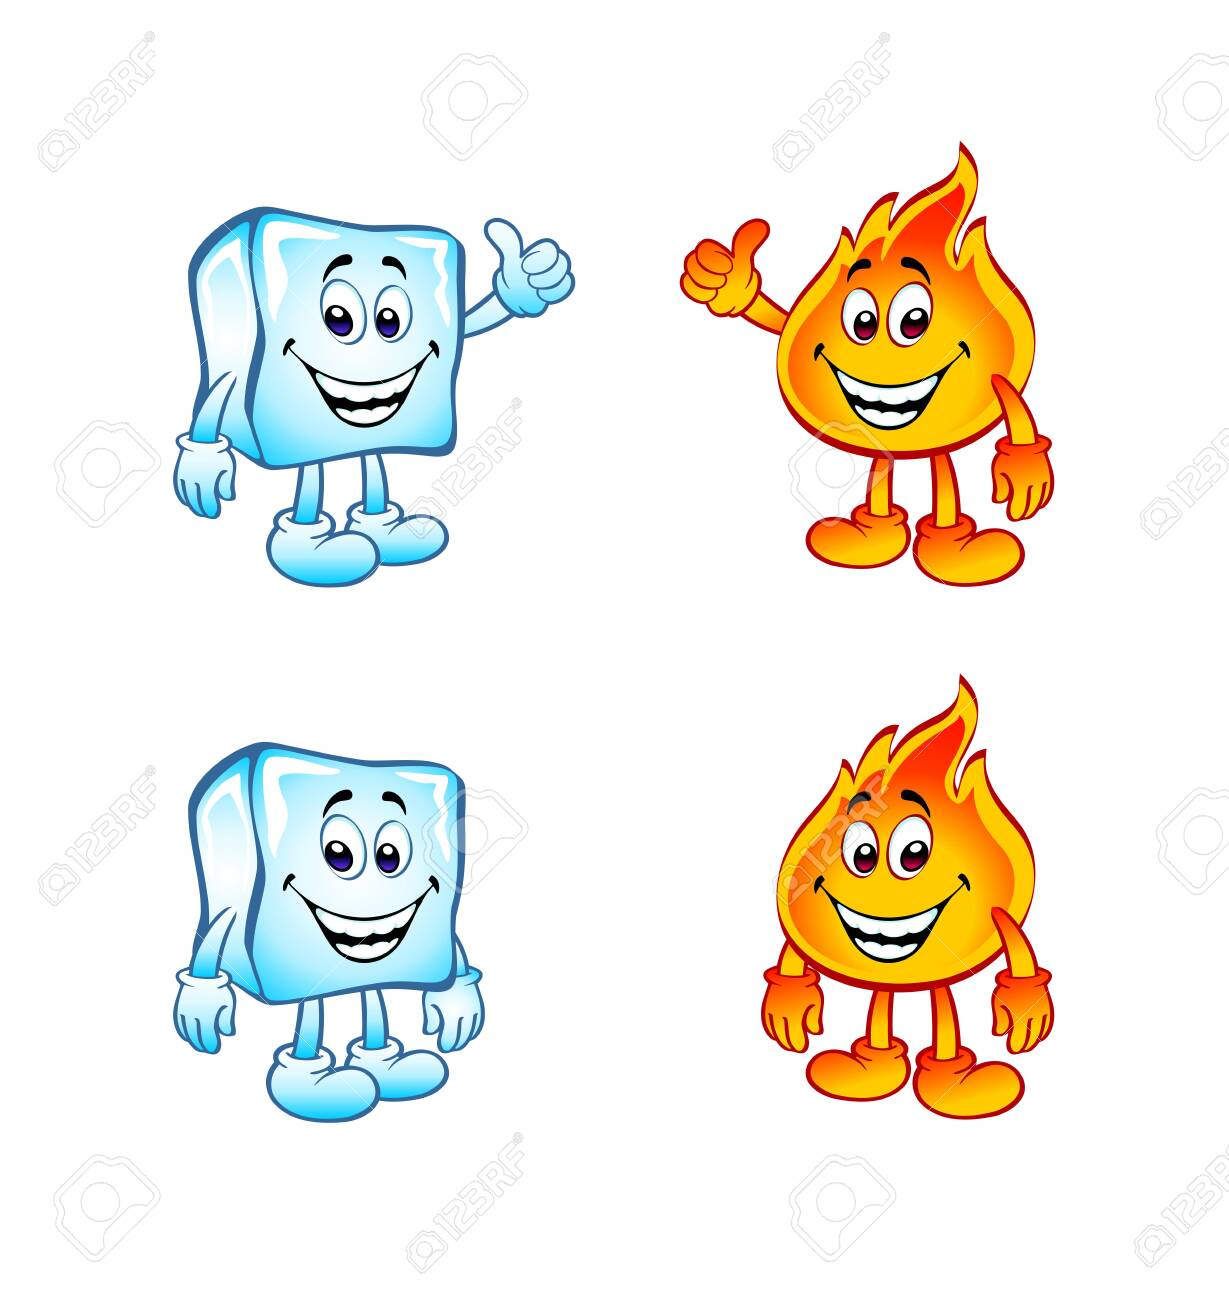 Cold And Hot Little Cartoon Figures Stock Photo Picture And Royalty Free Image Image 132483354